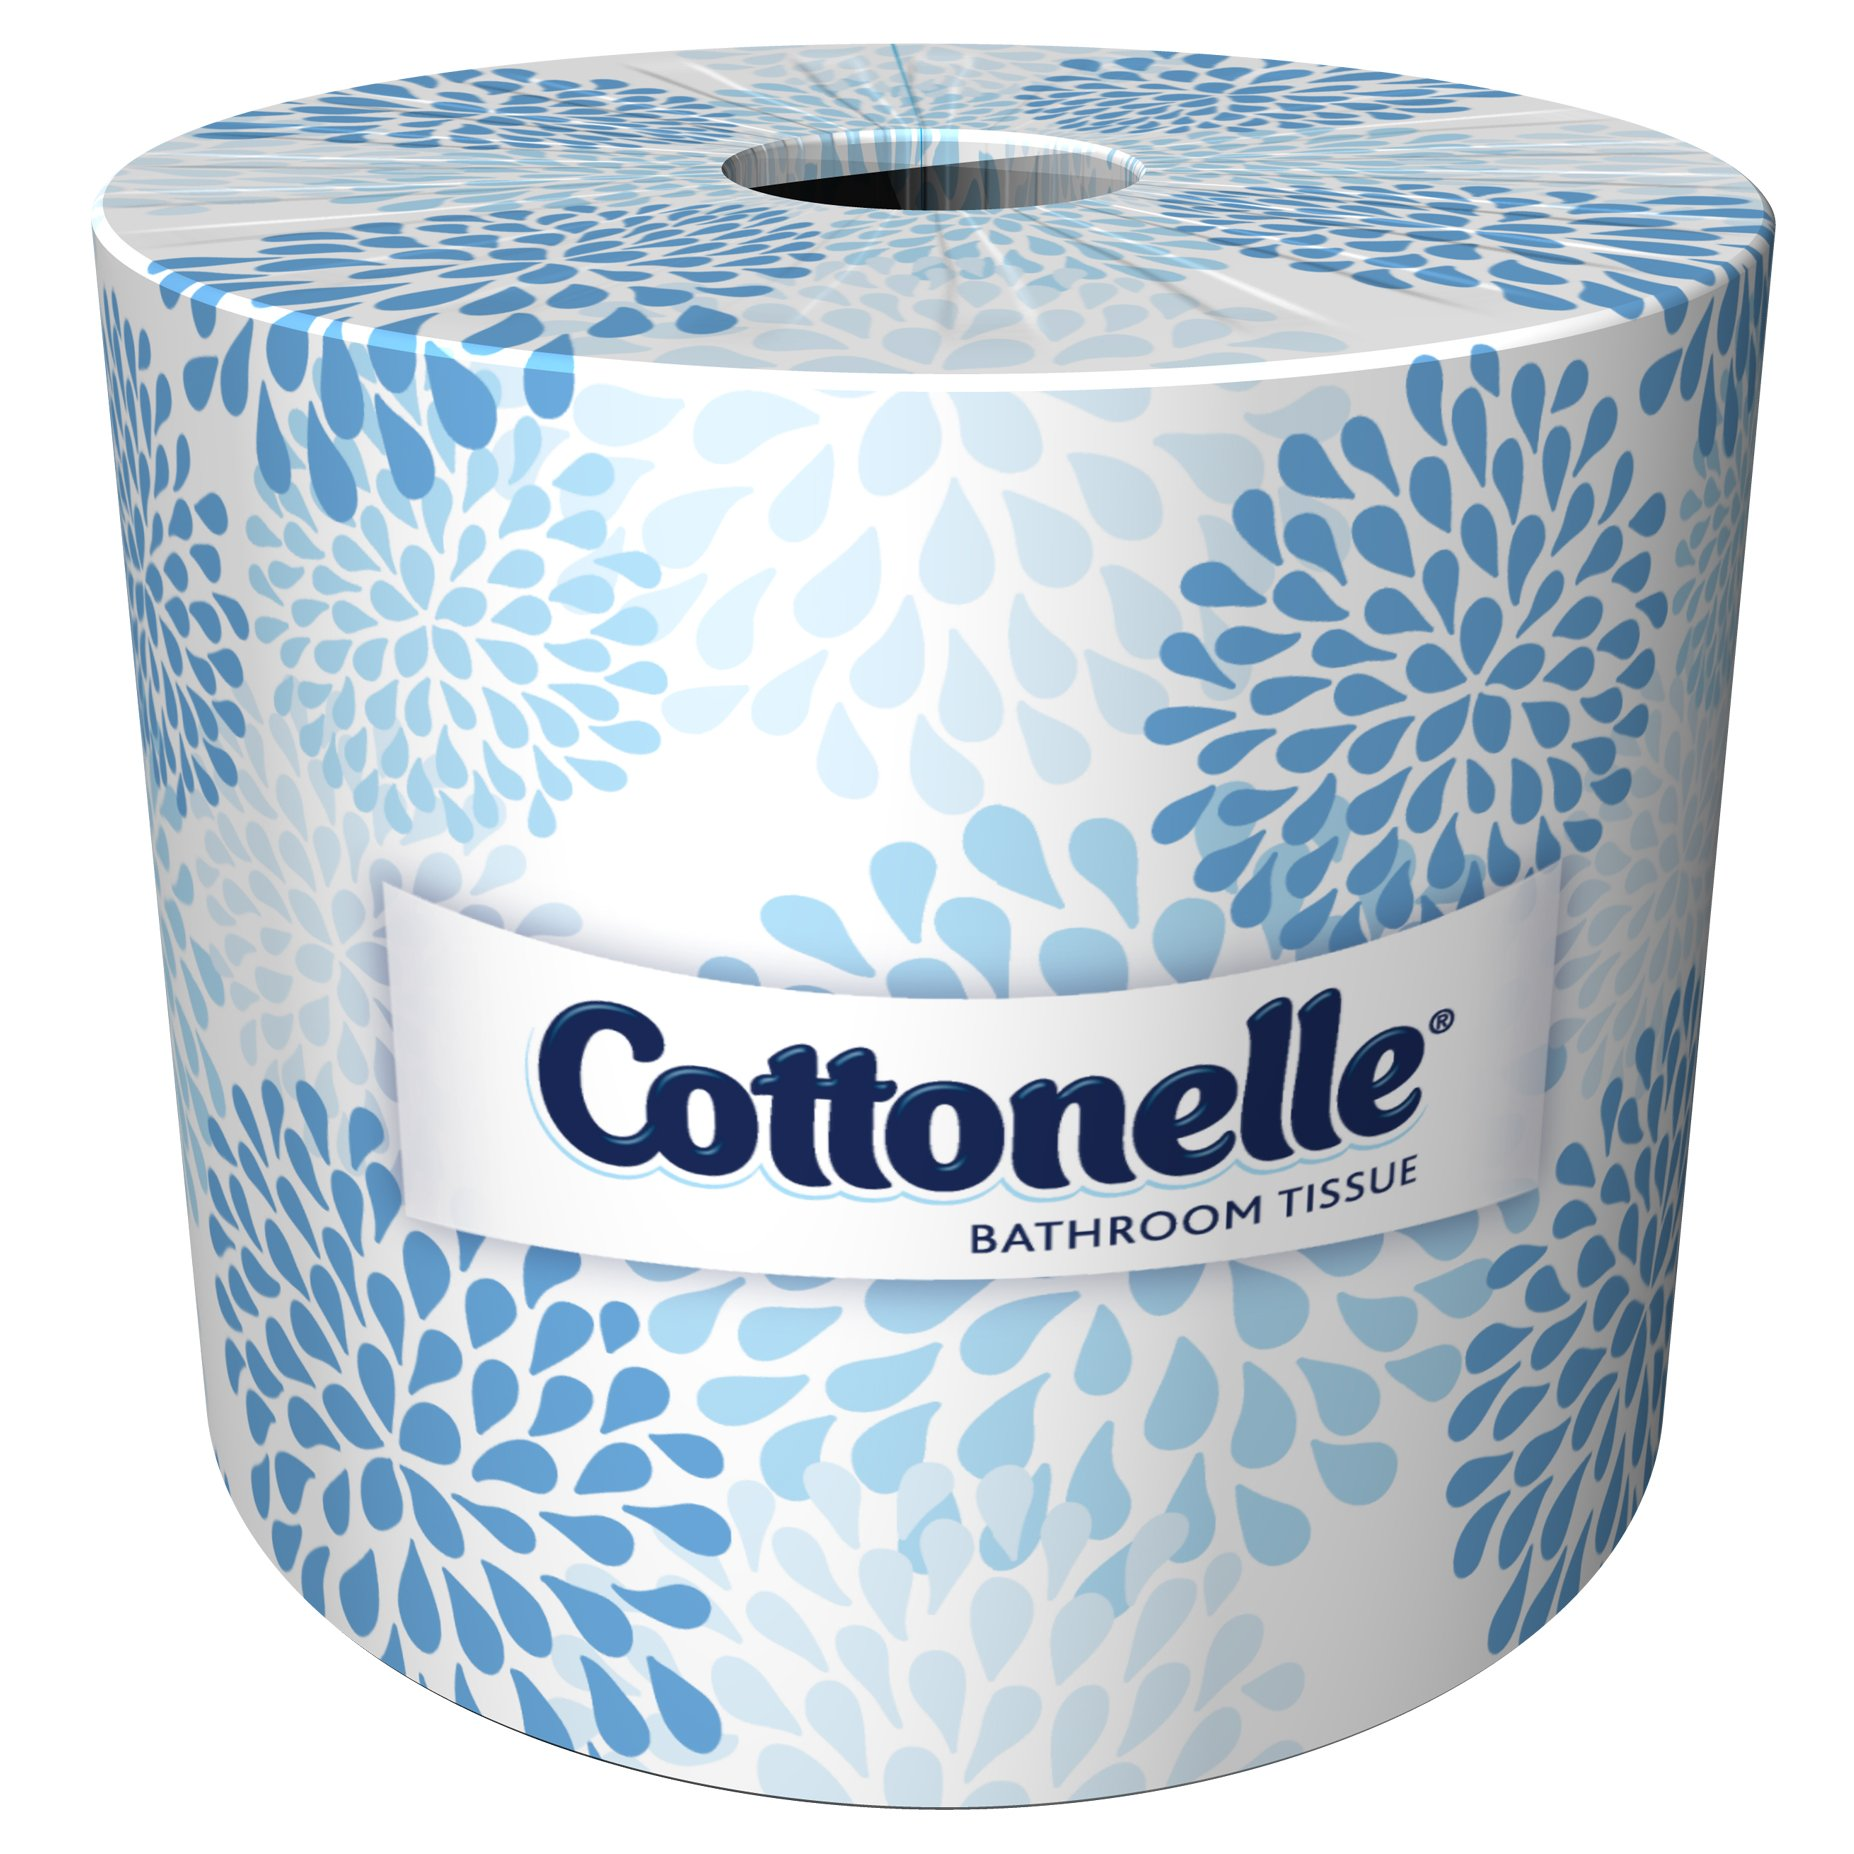 Cottonelle Professional  Bulk Toilet Paper for Business (17713), Standard Toilet Paper Rolls, 2-PLY, White, 60 Rolls / Case, 451 Sheets / Roll by Kimberly-Clark Professional